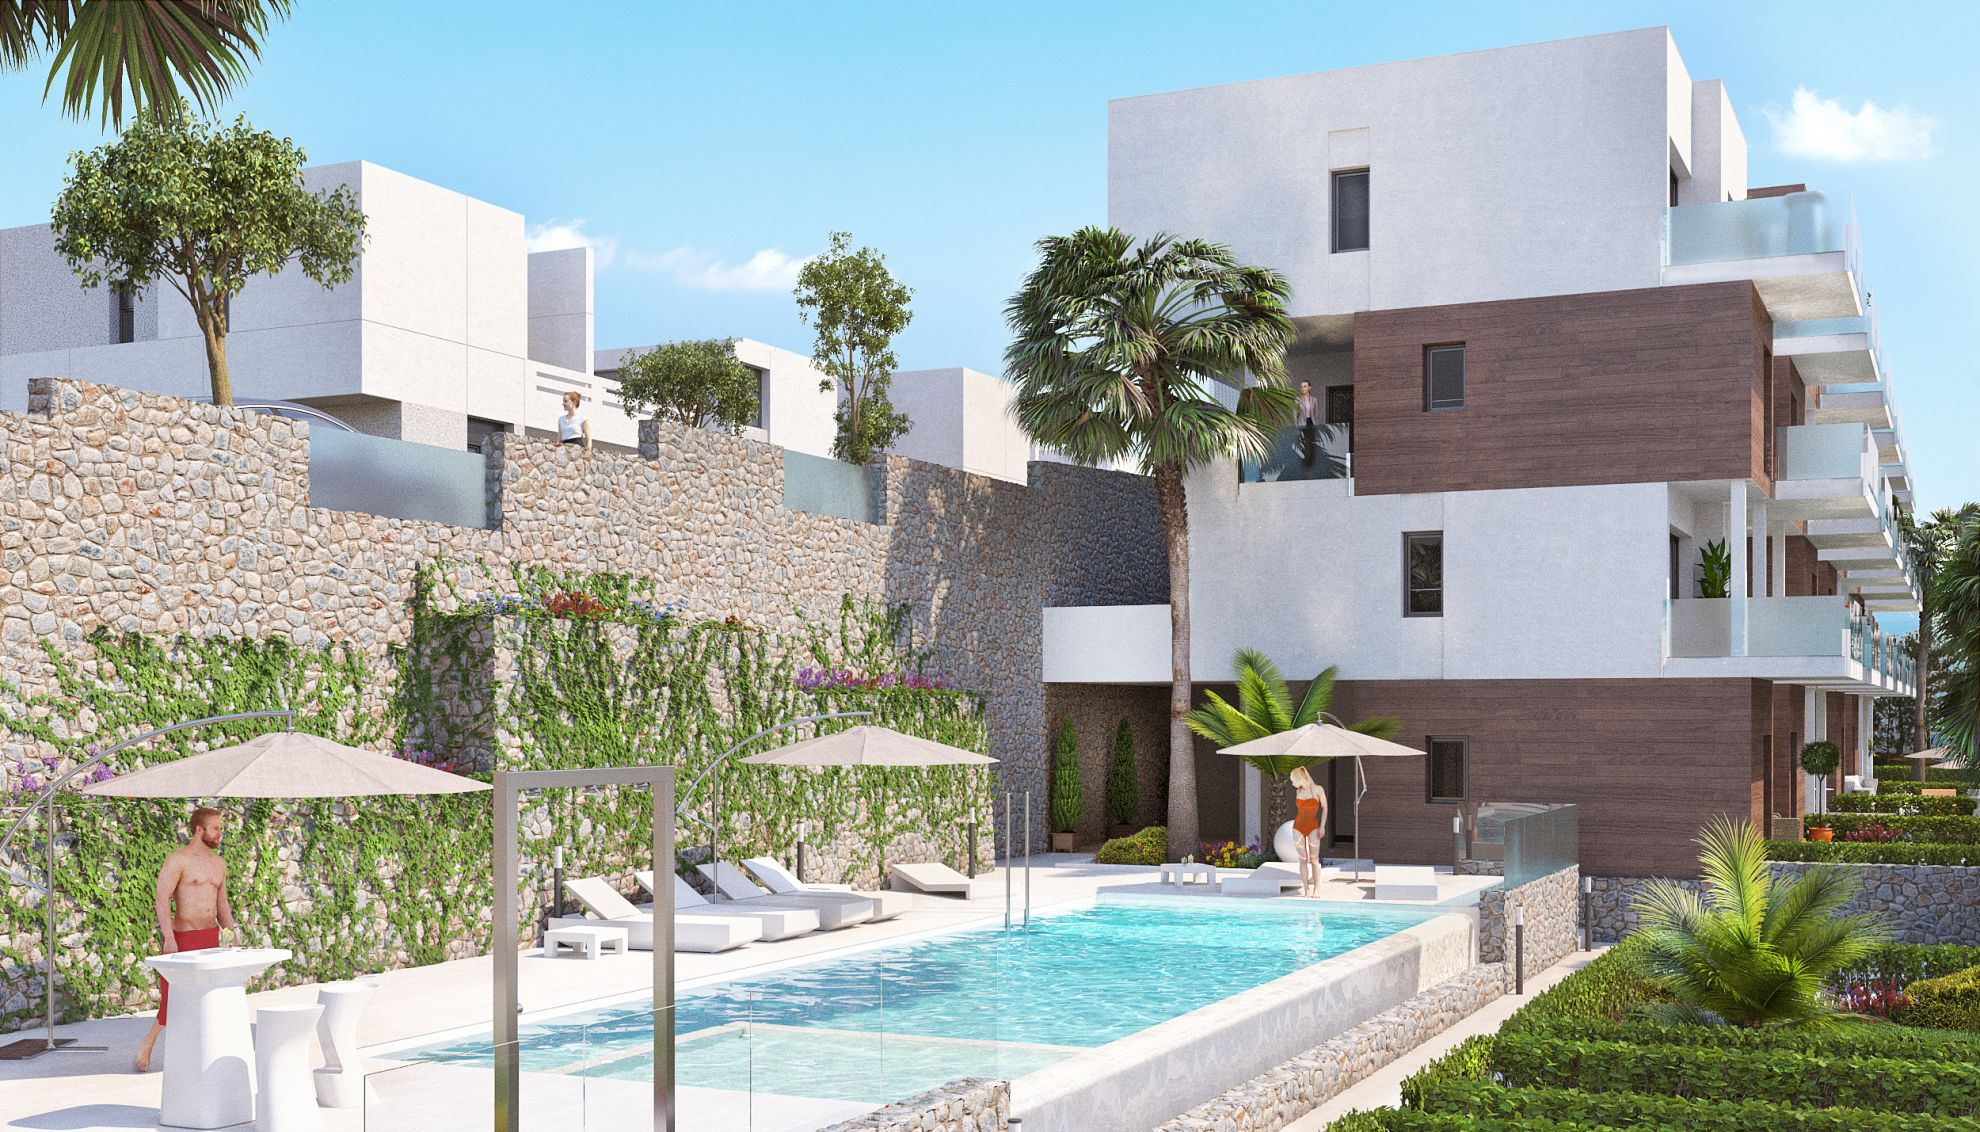 Apartments with 3 rooms and 2 bathrooms, garden and private pool, located in La Finca Golf. 2